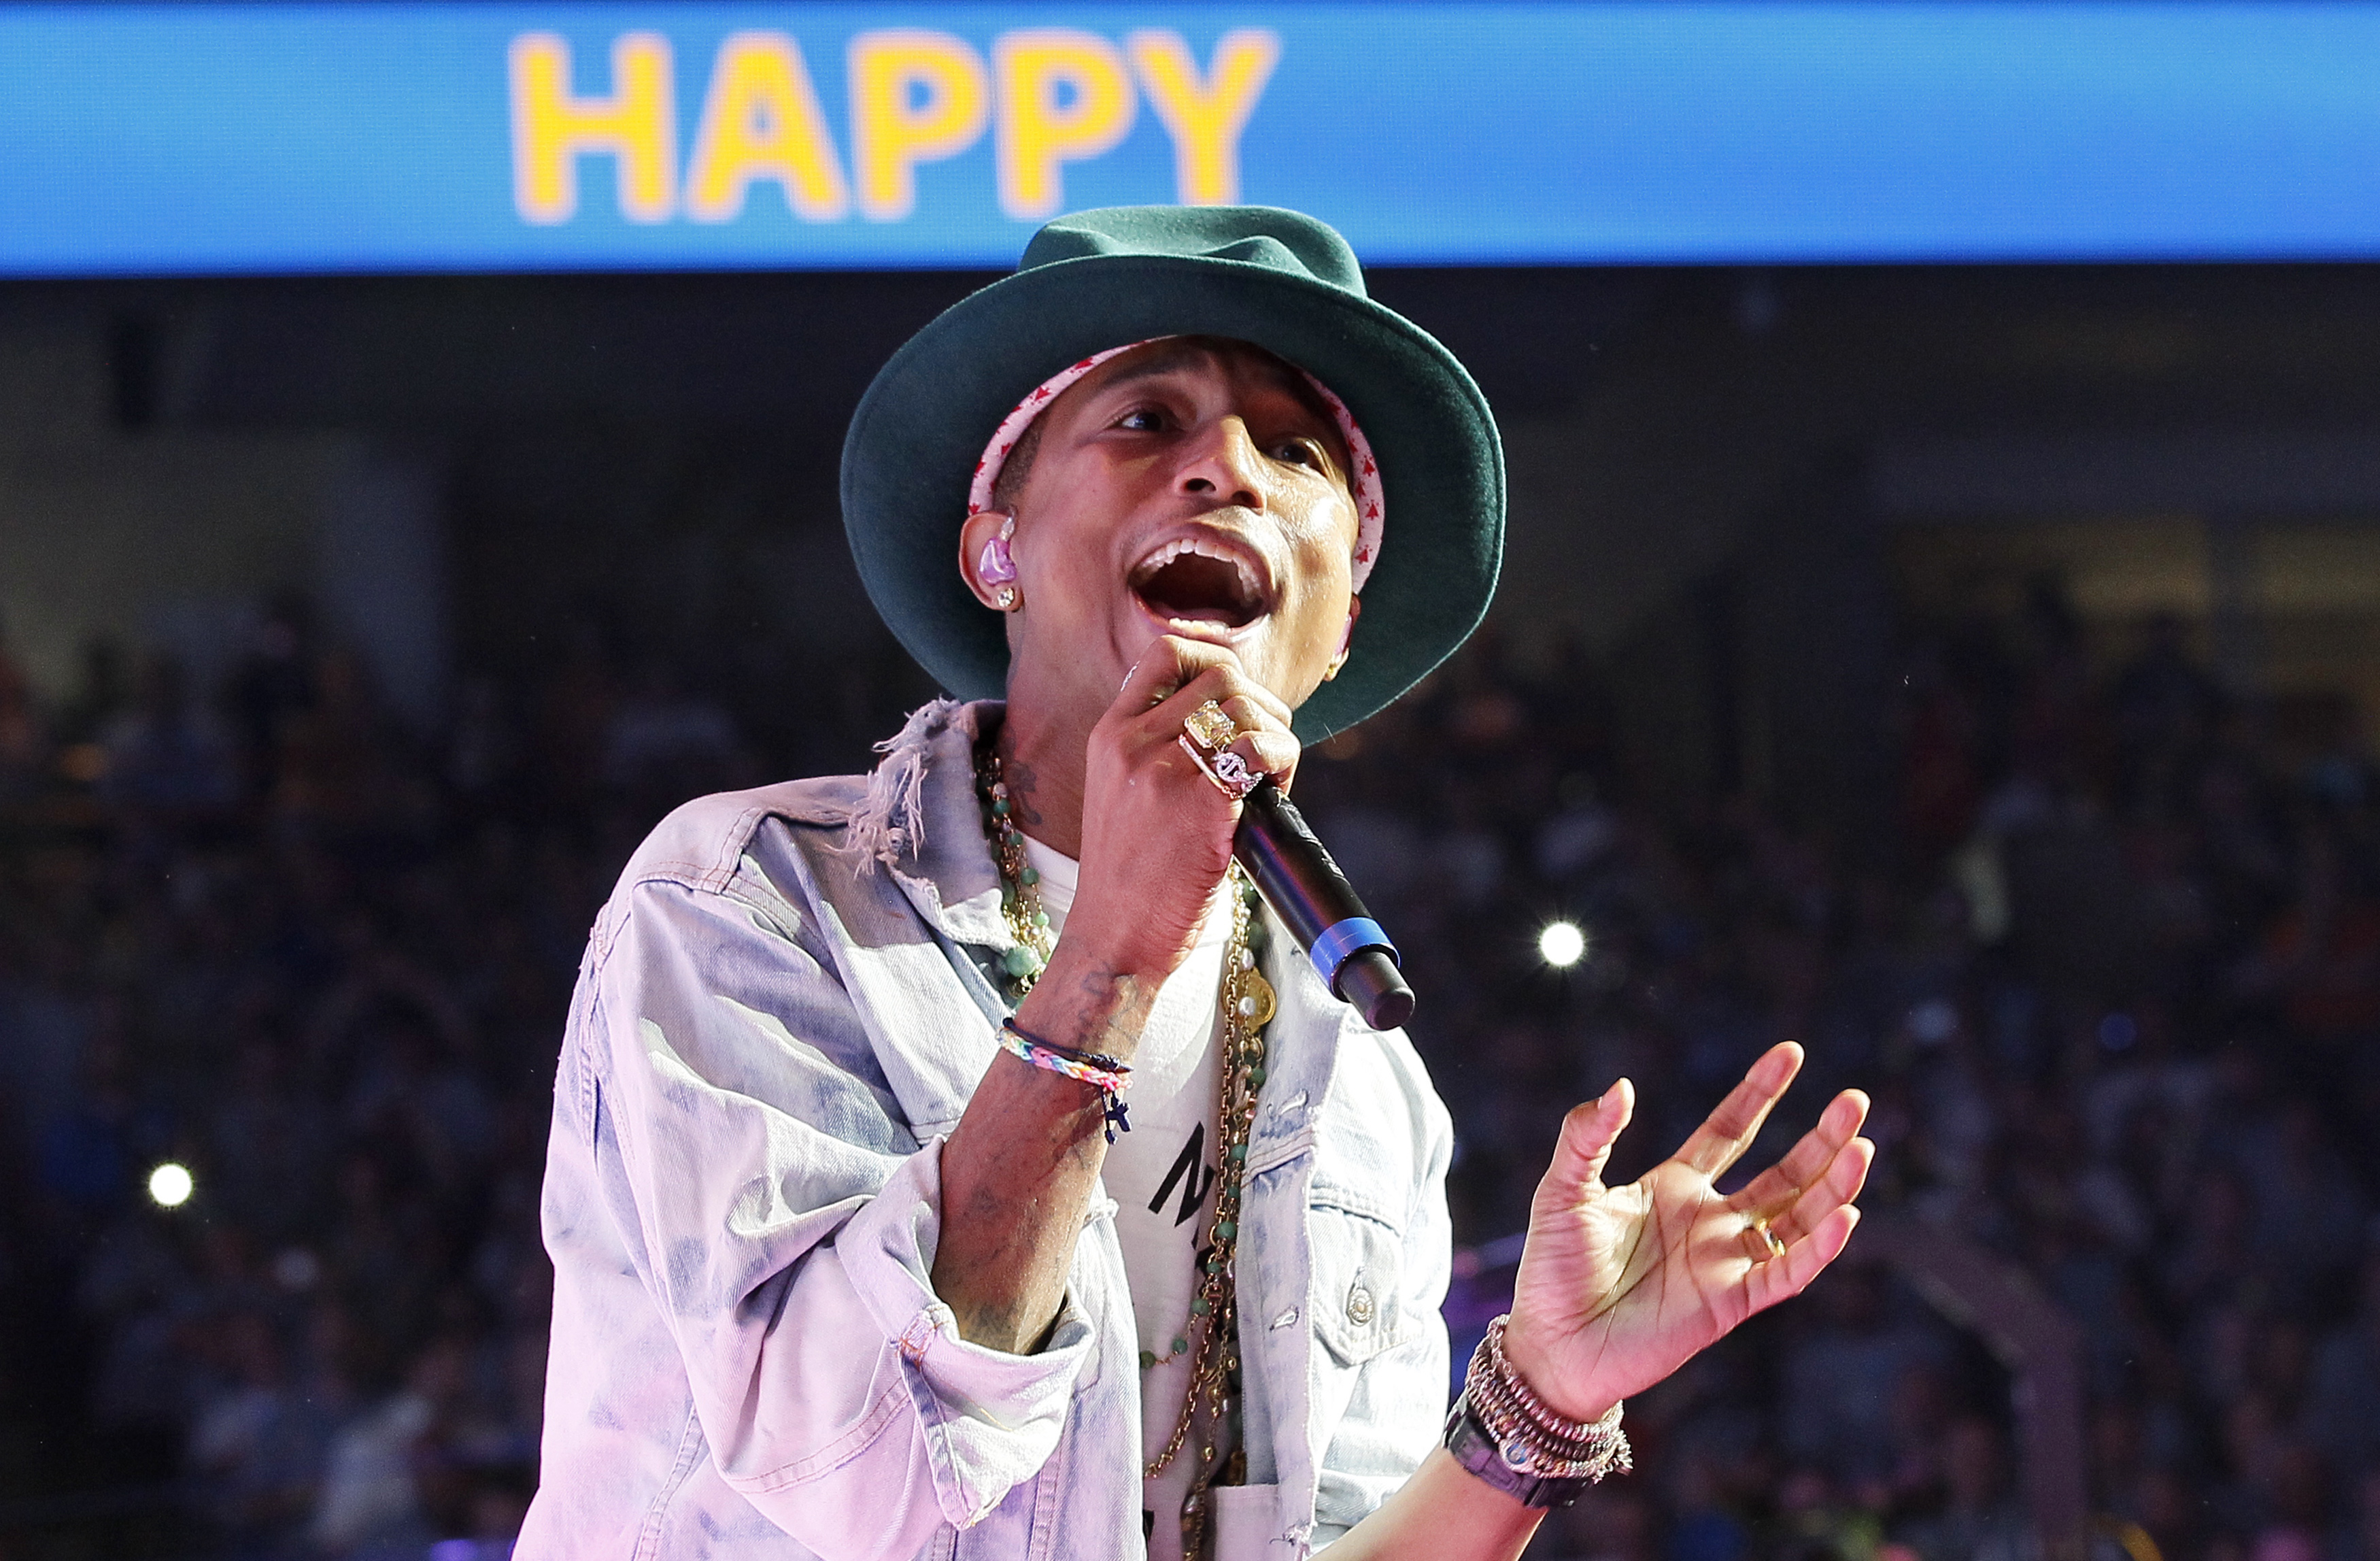 Singer Pharrell Williams performs his hit song  Happy  at the Walmart annual shareholders meeting in Fayetteville, Arkansas June 6, 2014.